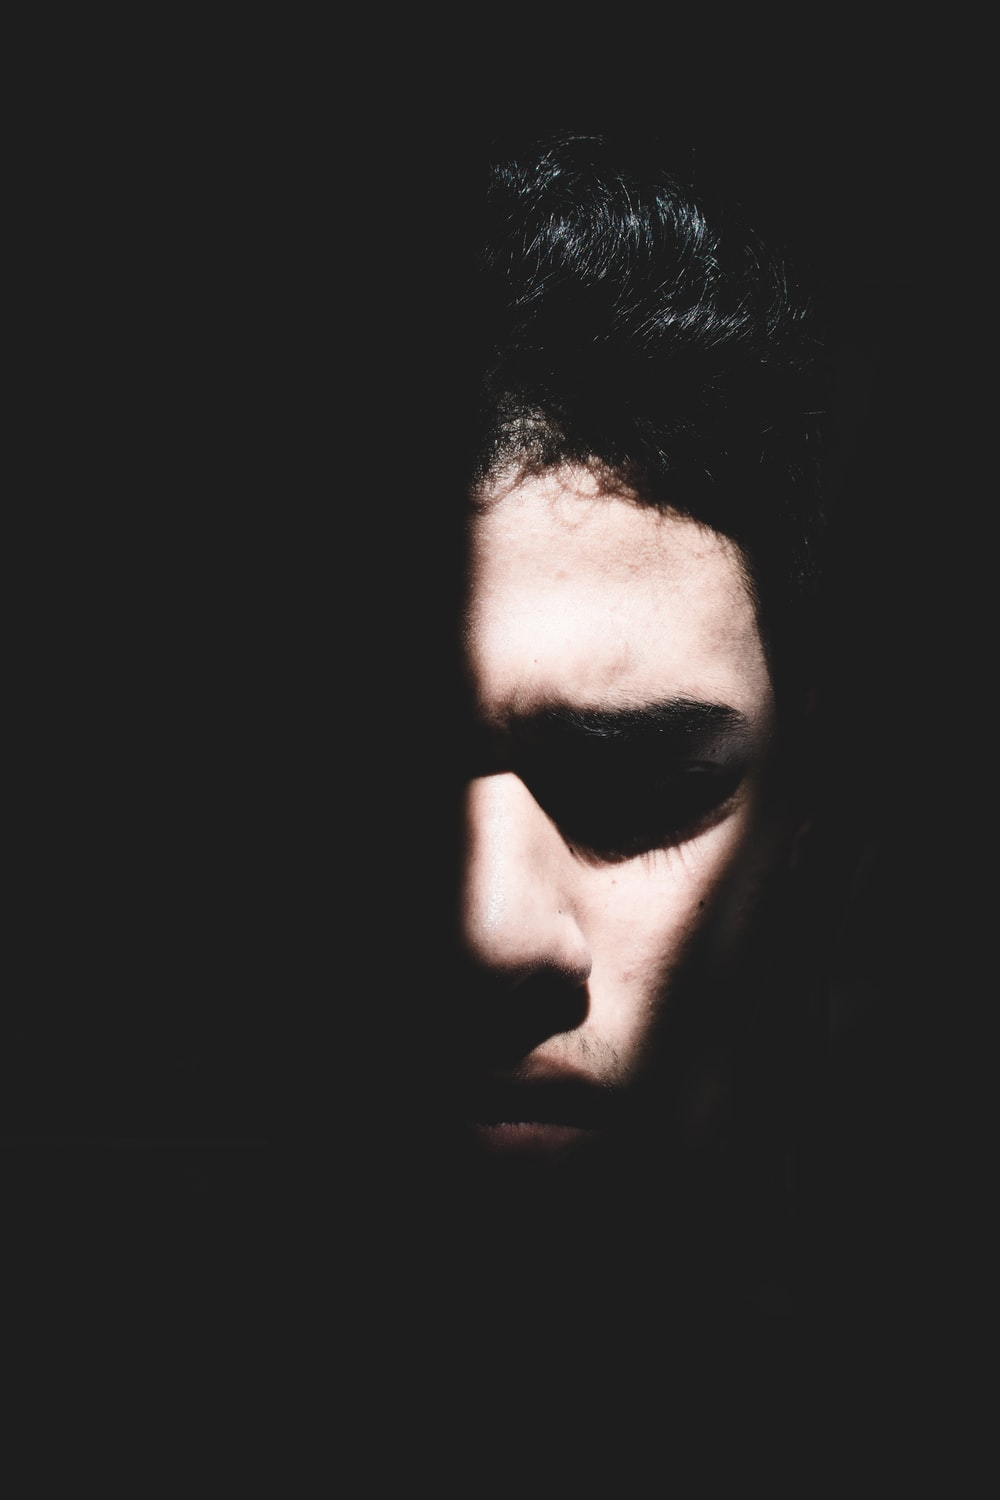 silhouette of half human face